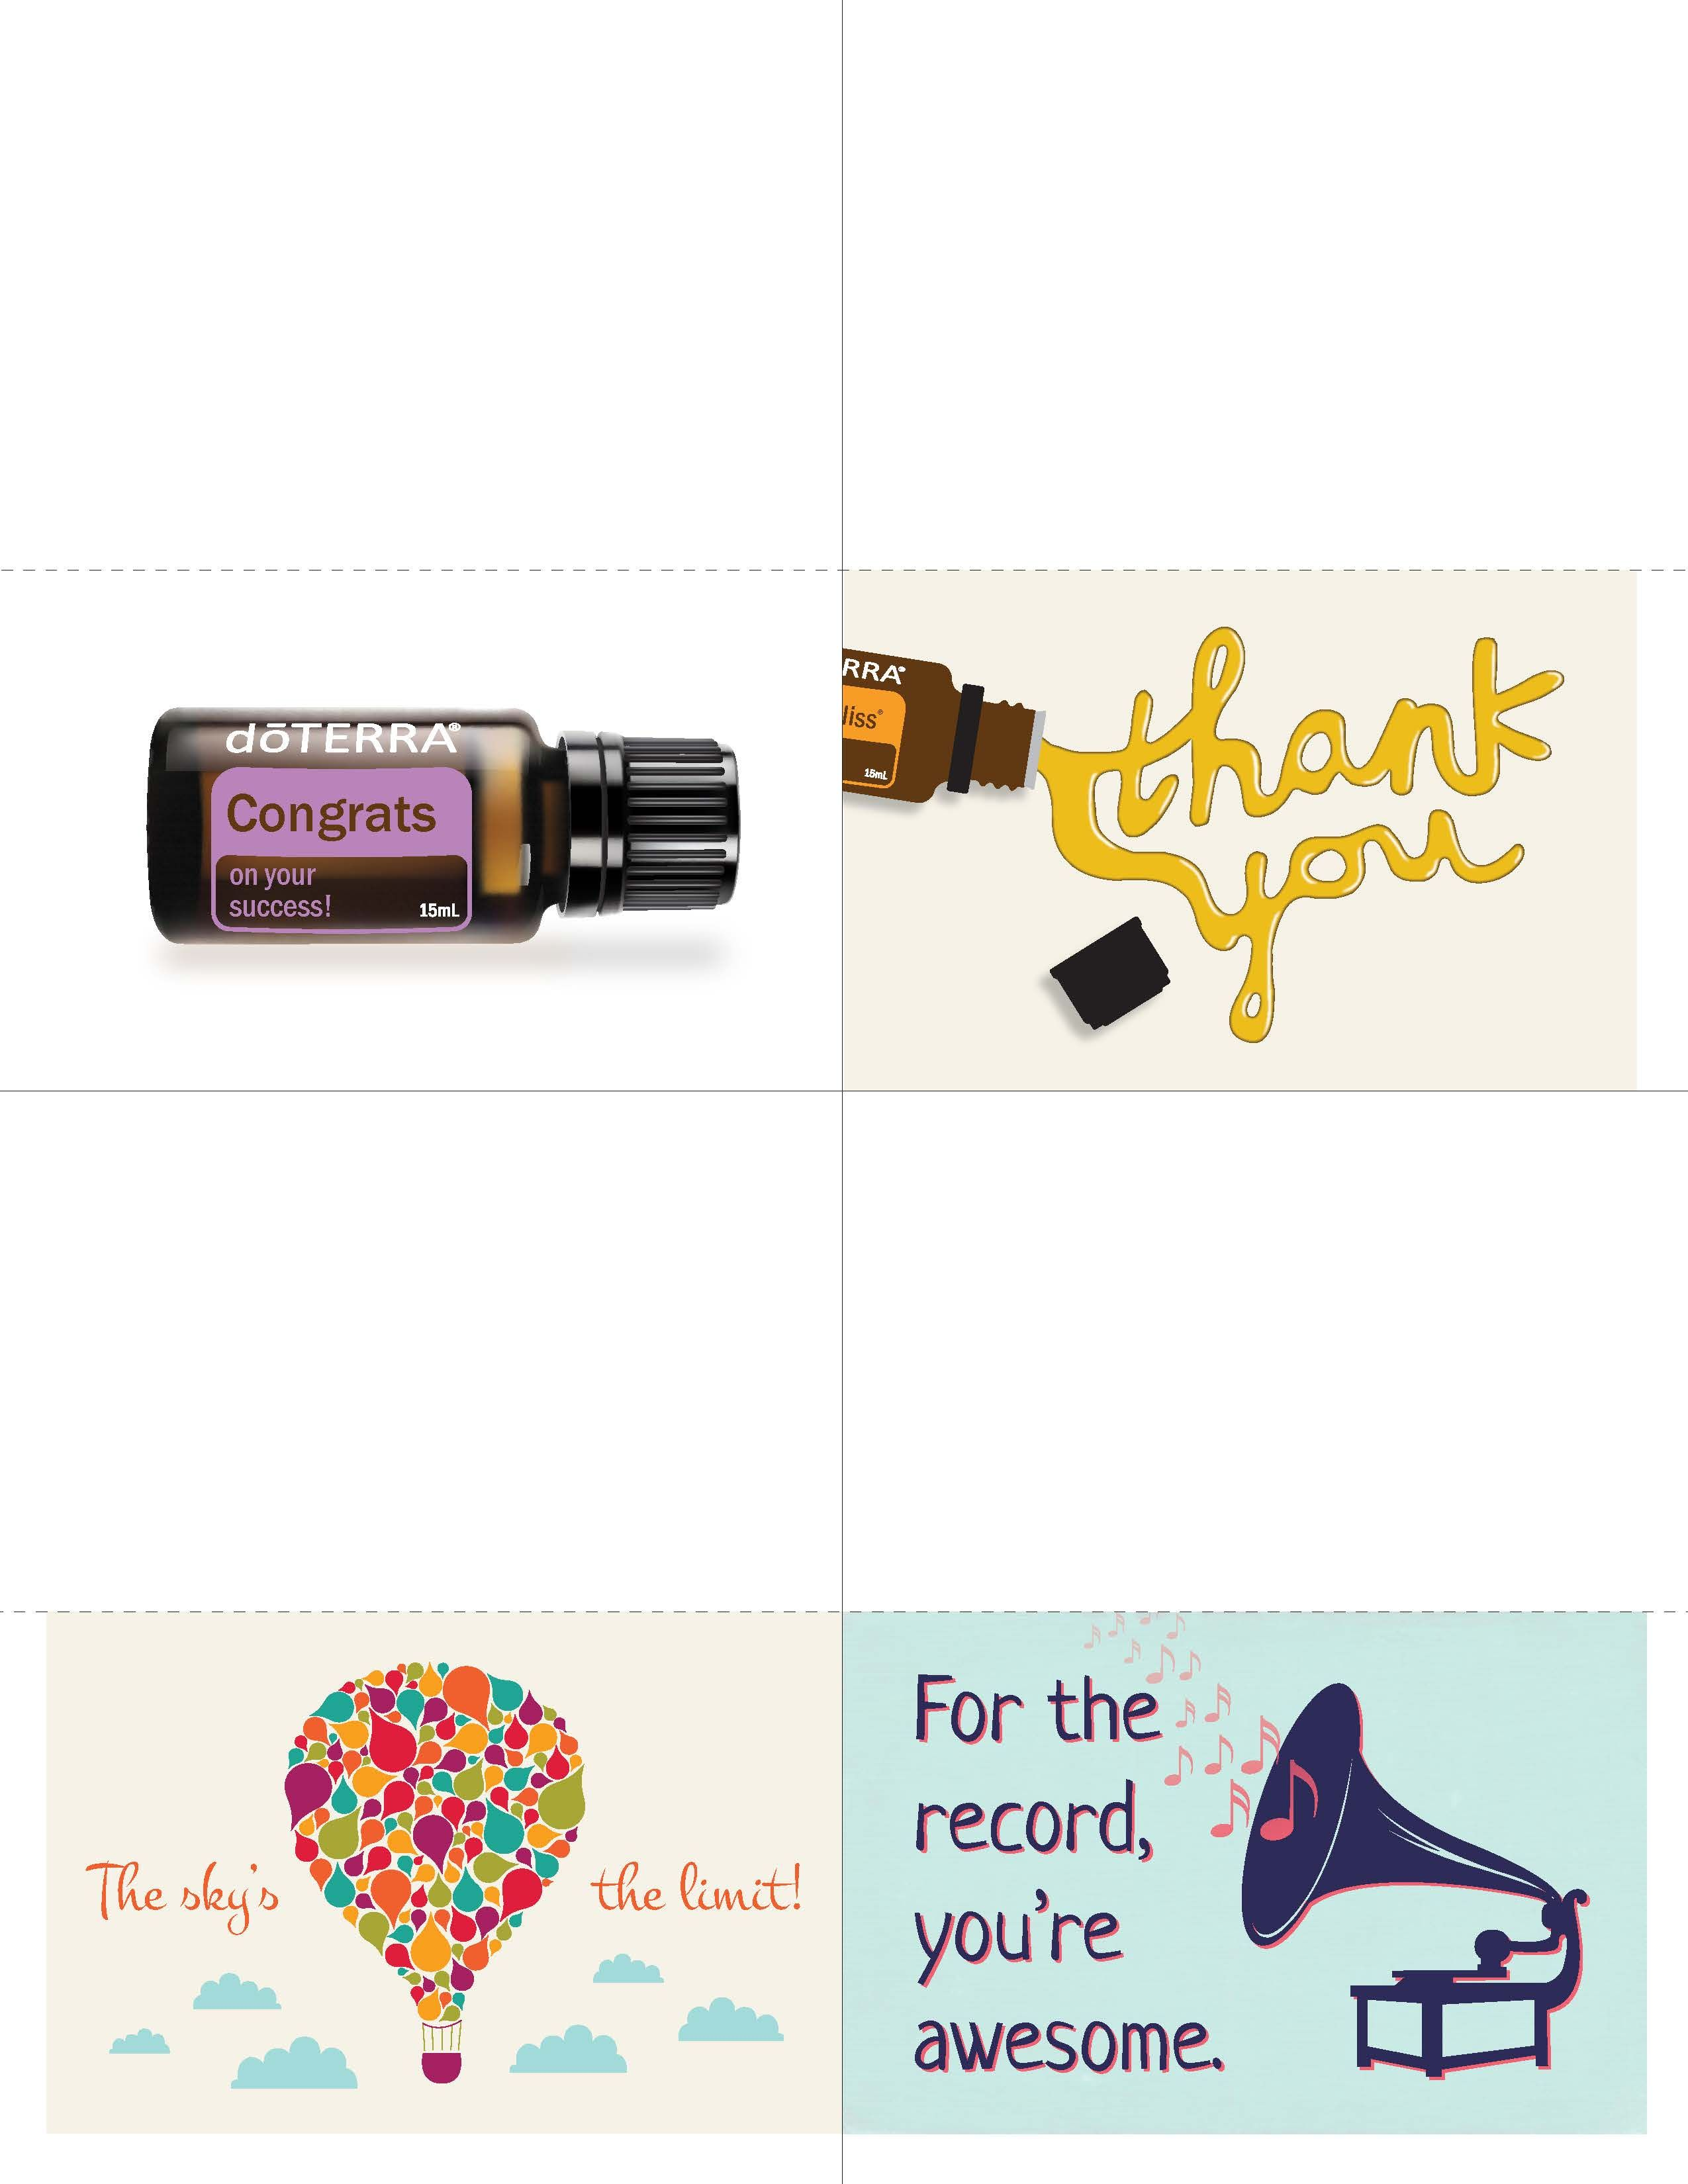 Downline Appreciation Day Thank You Cards Doterra Business Cards Template Young Living Business Cards Templates Doterra Business Cards